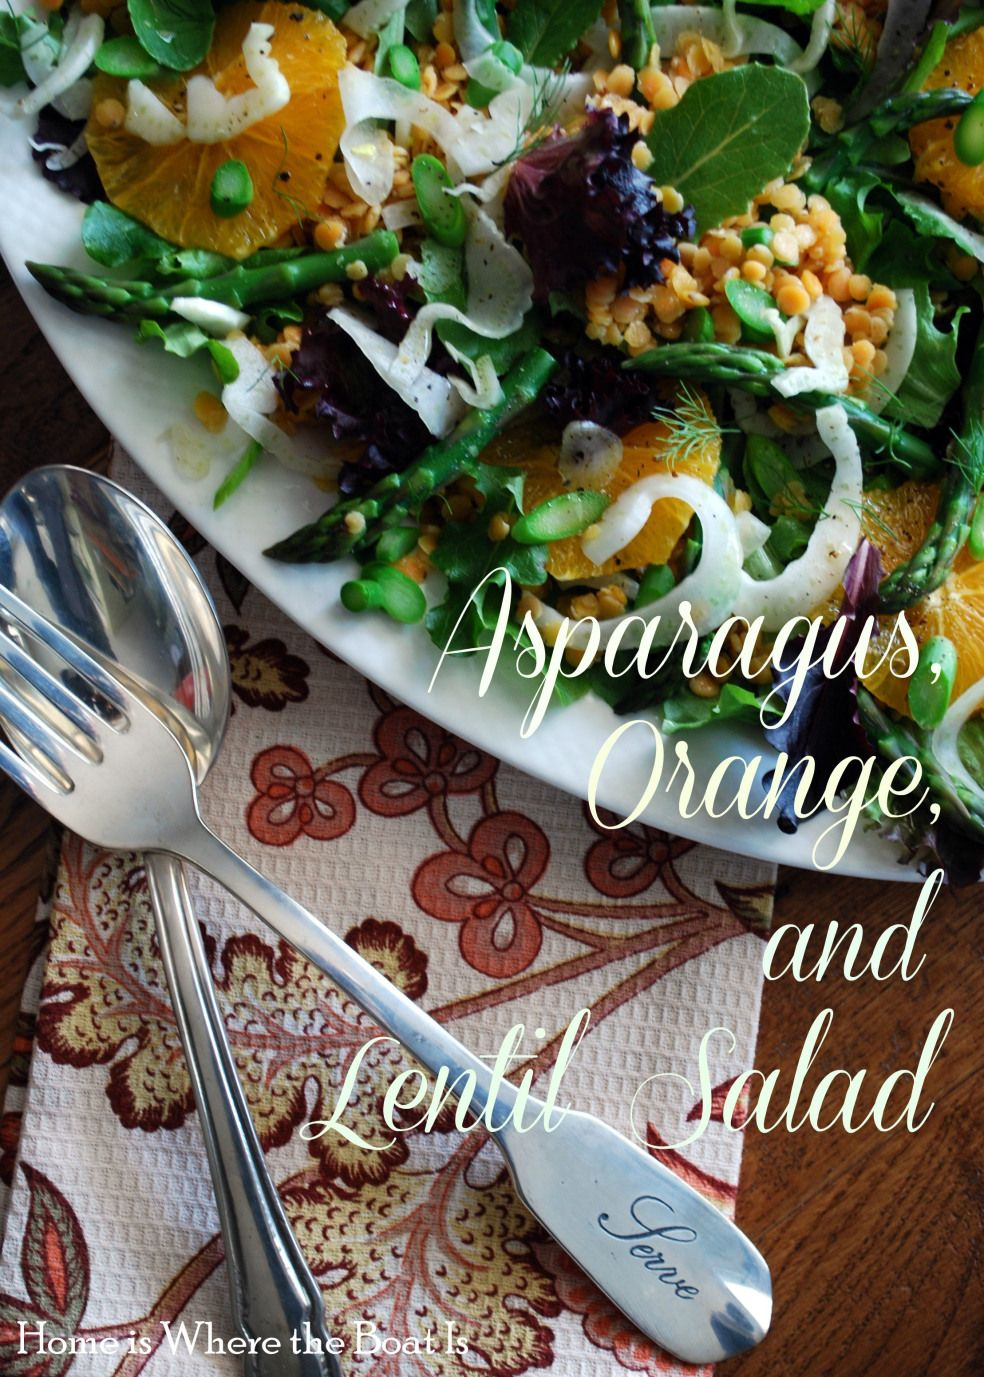 Asparagus Orange & Lentil Salad